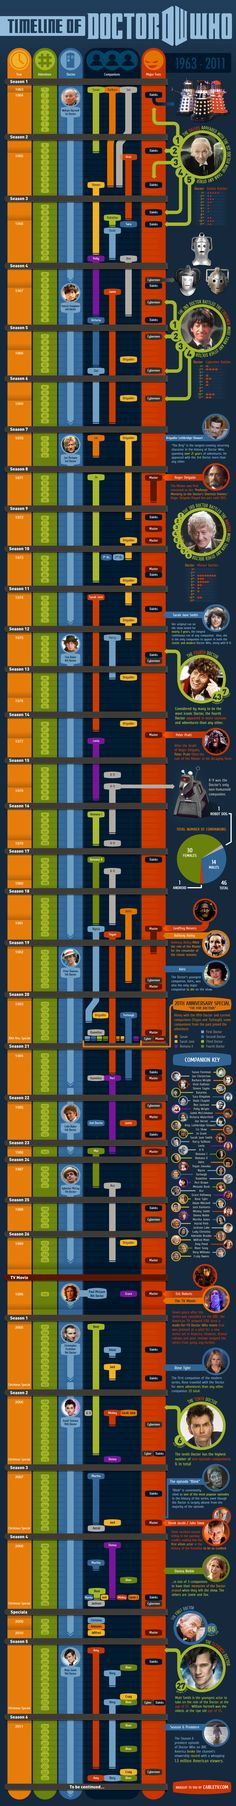 Community Post: Dr Who Timeline Infographic